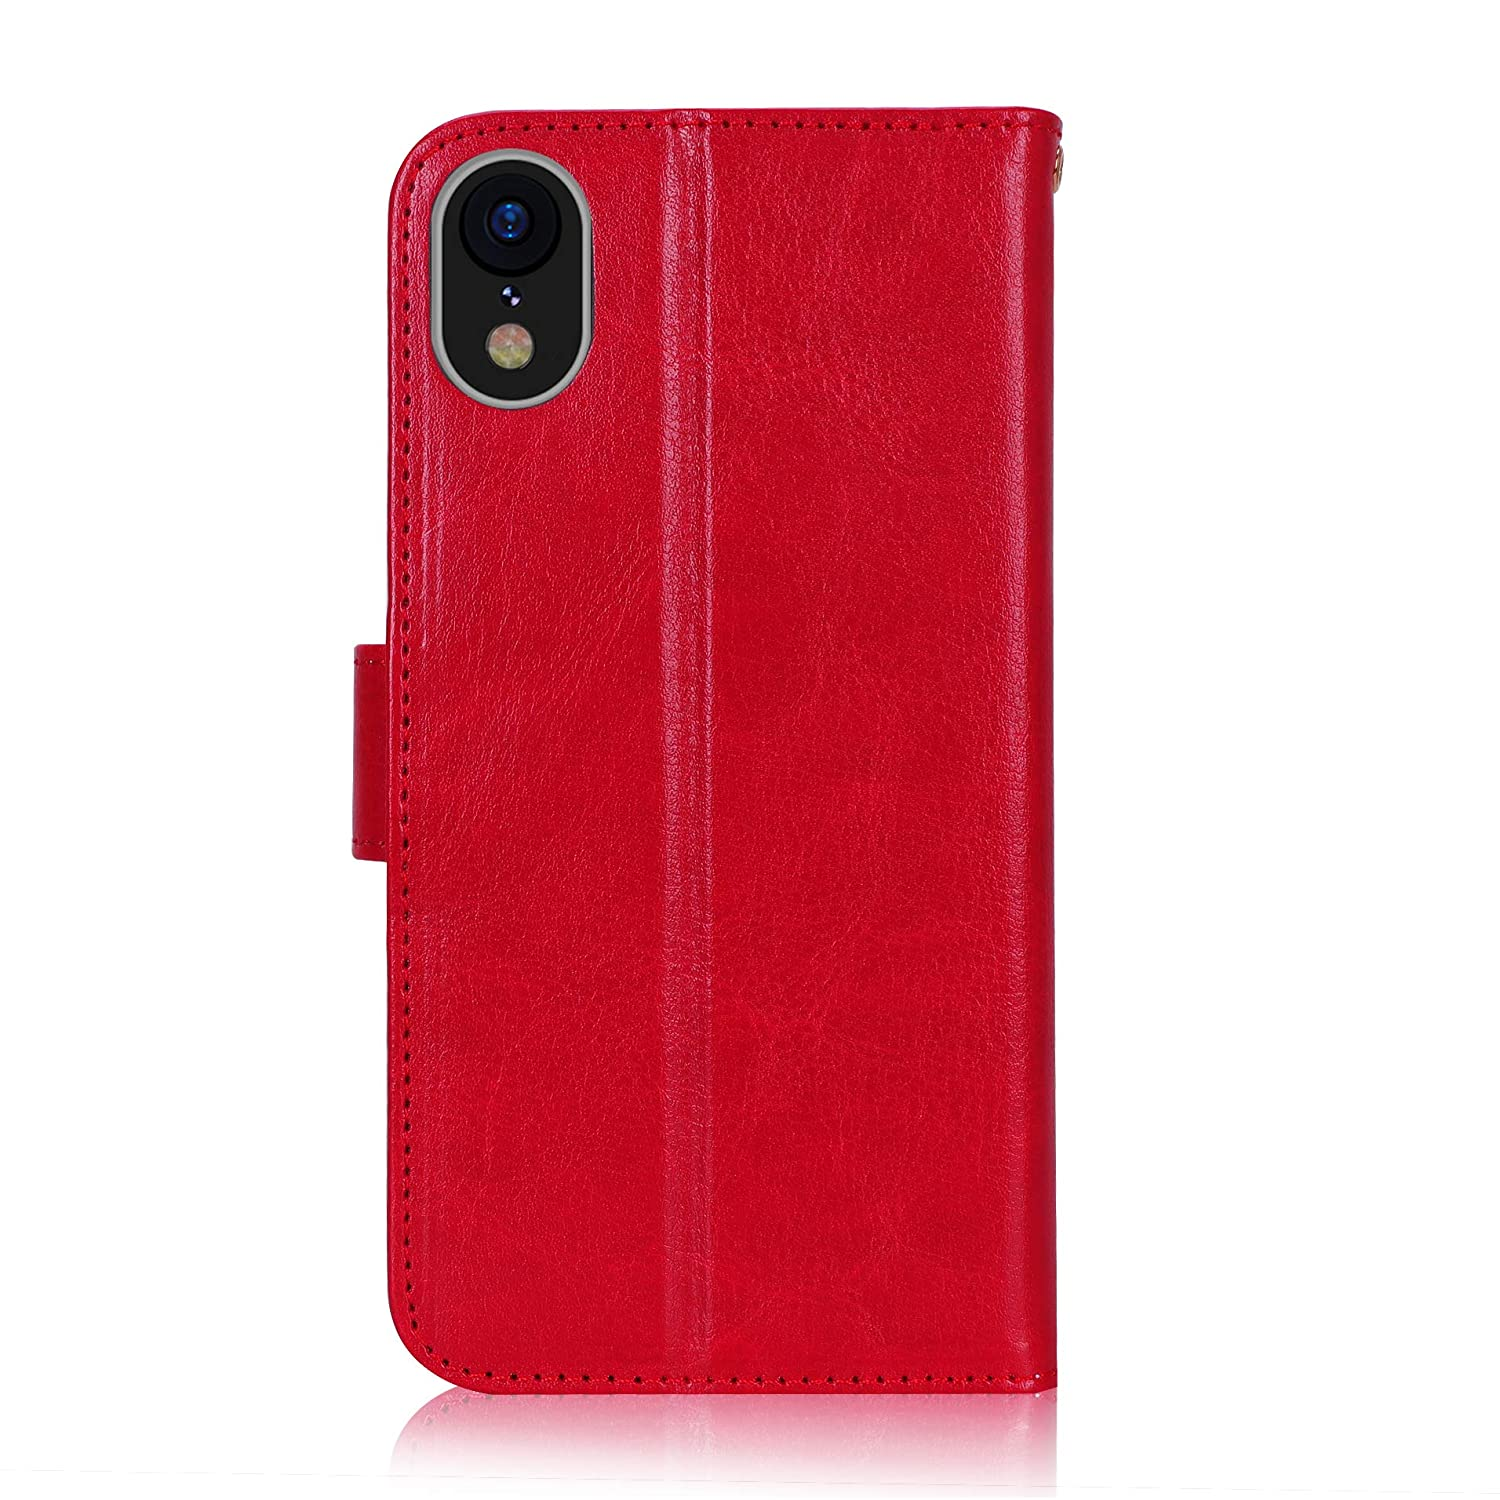 iPhone XR Case Card Slots 2018 Black Kickstand Flip Case for Apple iPhone XR 6.1 Inch fyy iPhone XR Wallet Case Premium Leather Protector Cover with